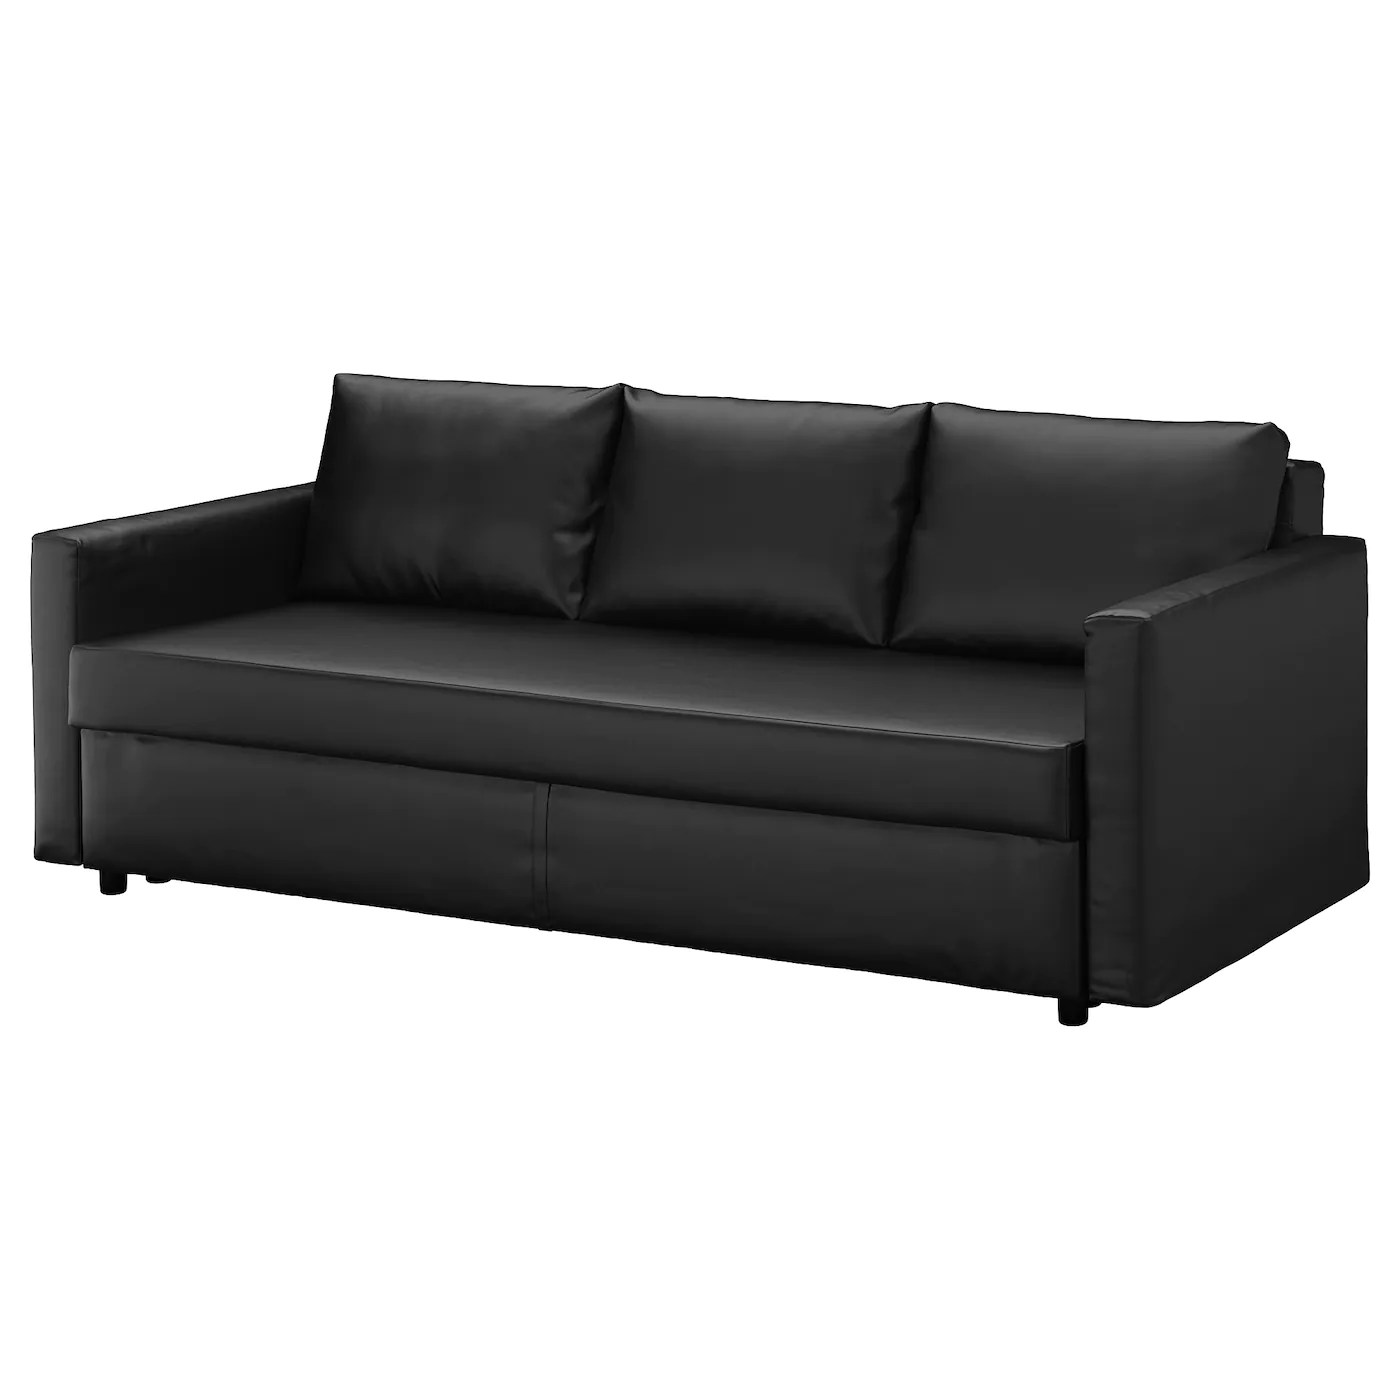 klik klak sofa with storage leather beds for sale friheten three-seat sofa-bed bomstad black - ikea